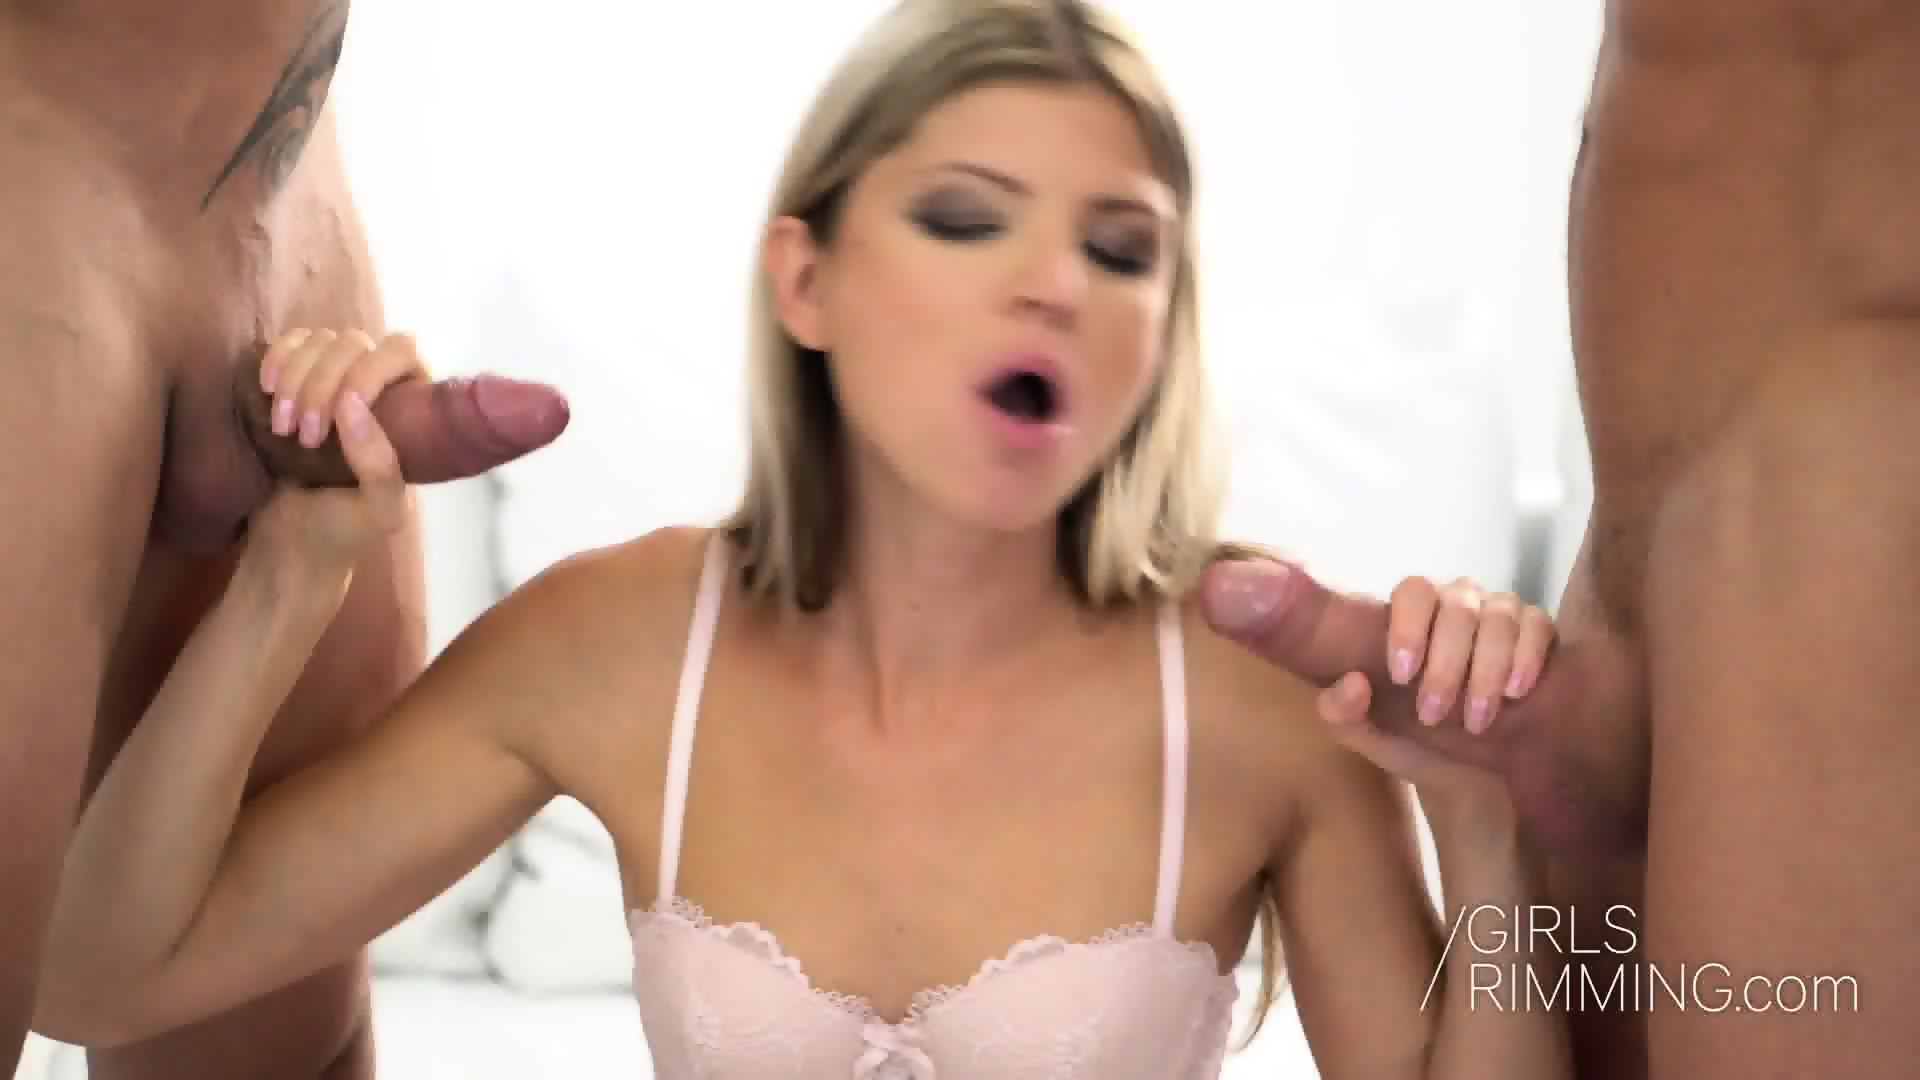 Sex In Clasa With Teen Gf Bf